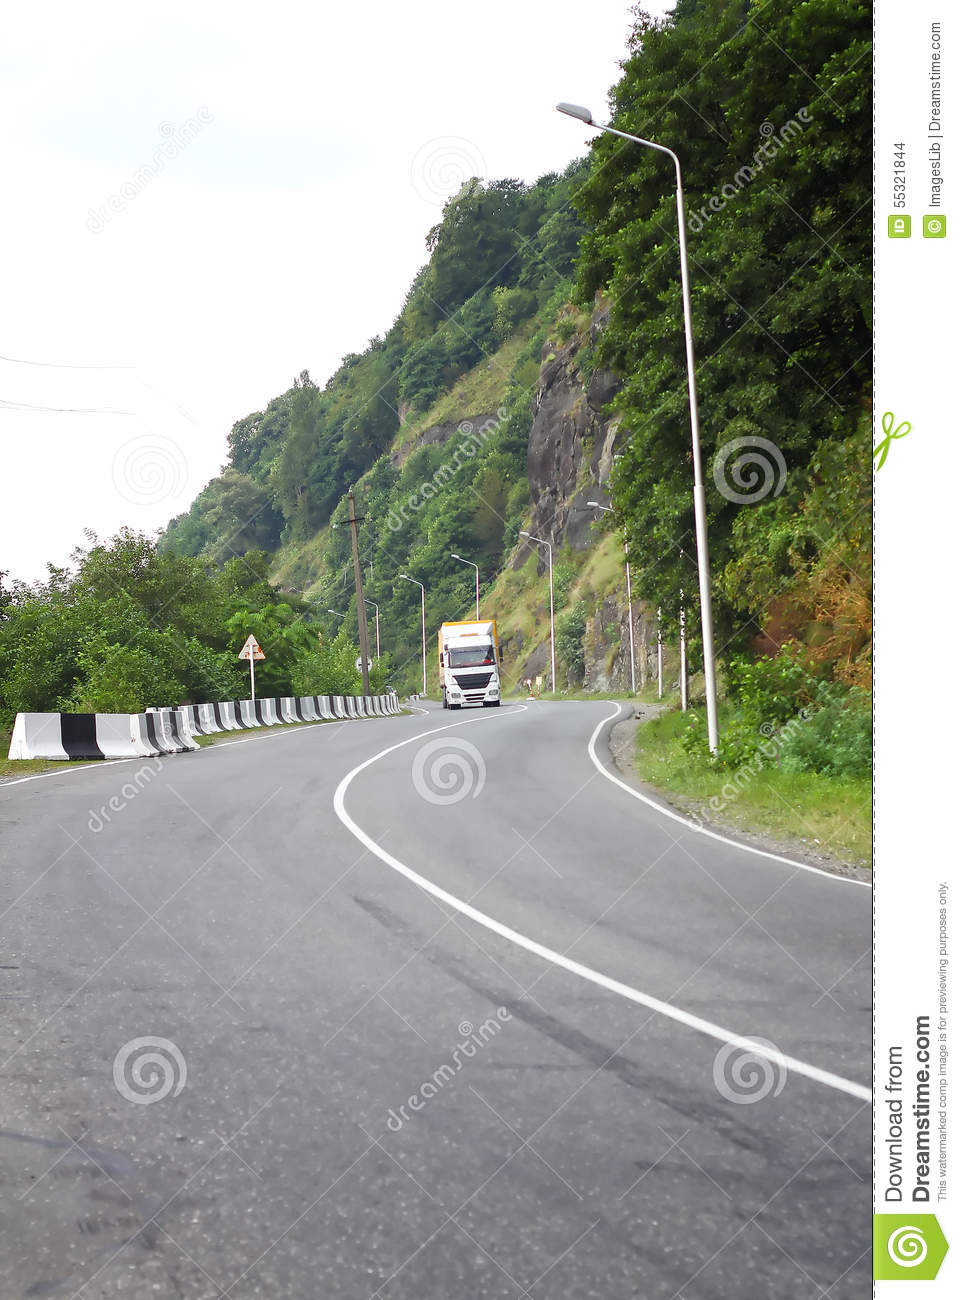 truck on the road car on the long distance stock photo image 55321844. Black Bedroom Furniture Sets. Home Design Ideas